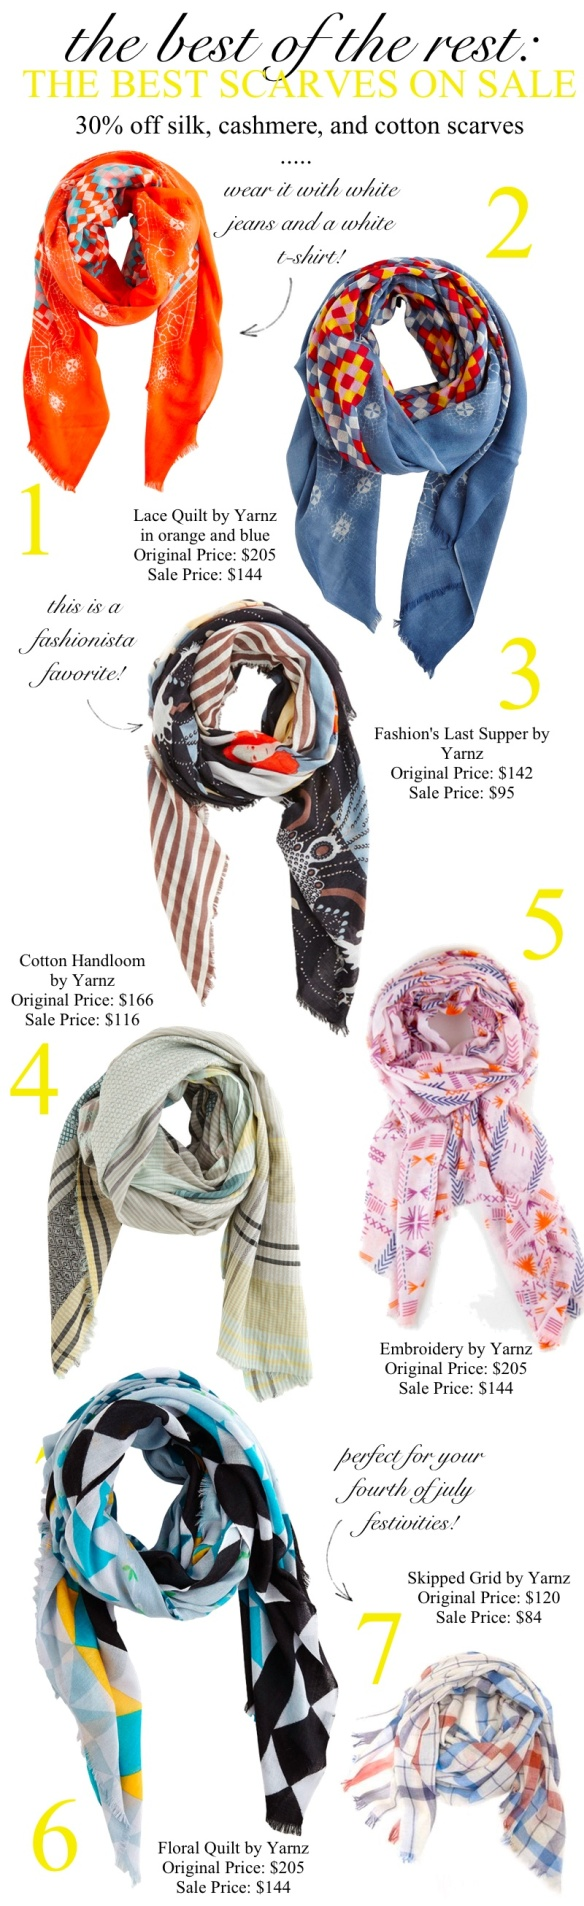 Best Scarves on Sale